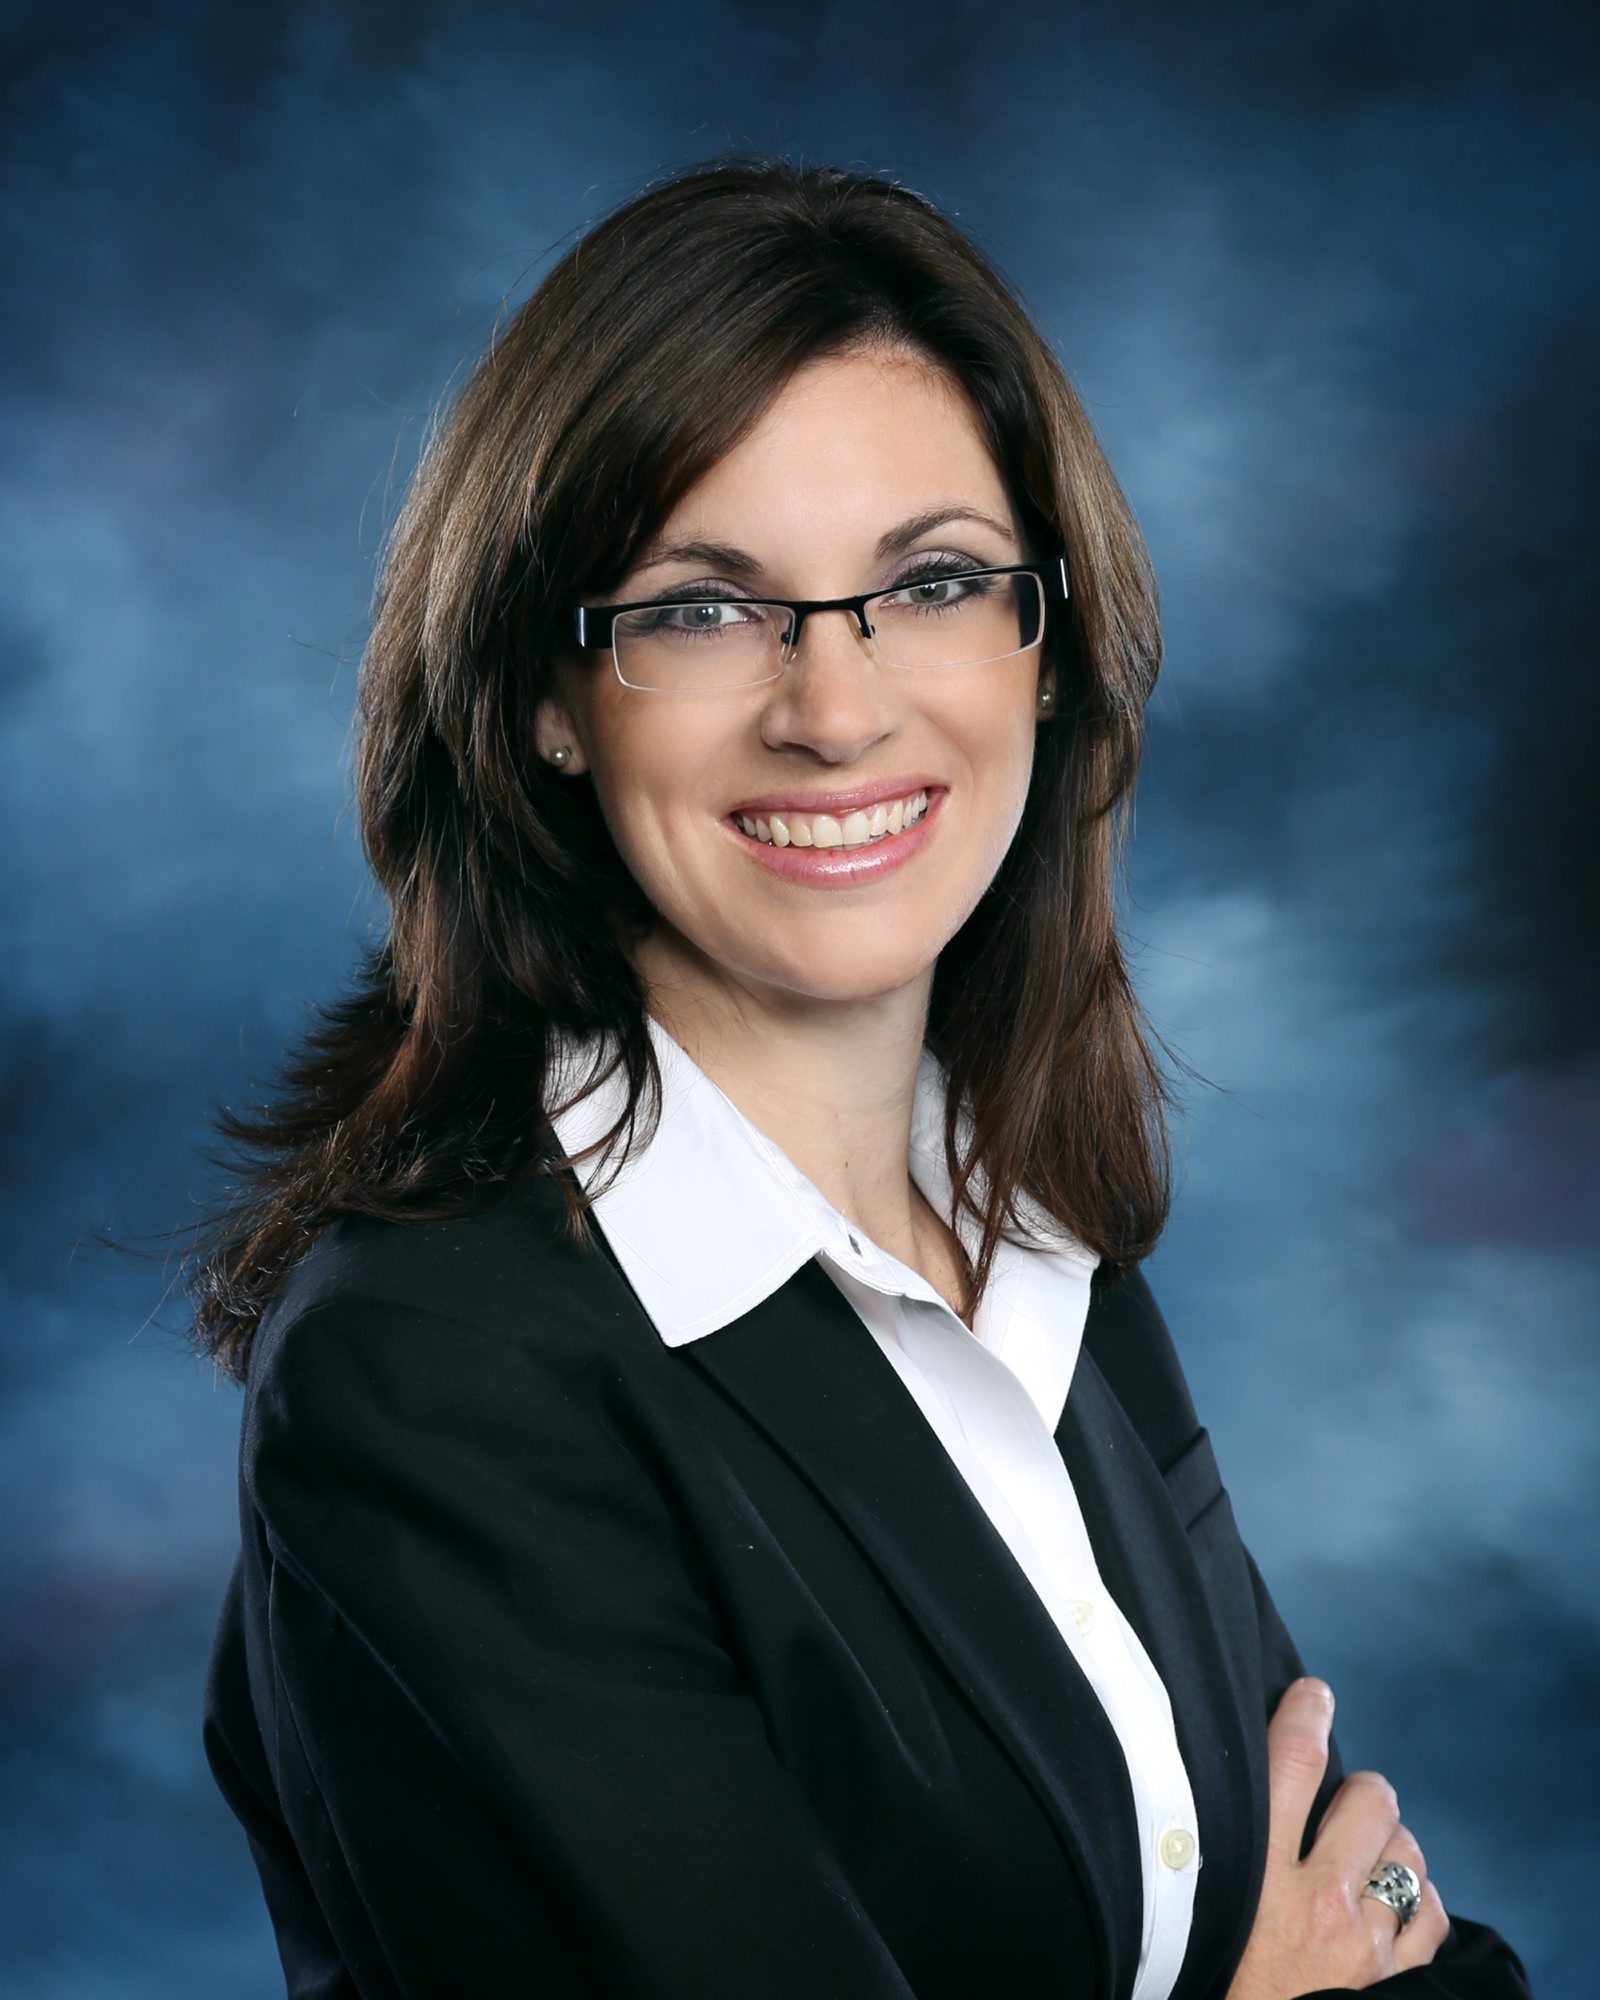 Sarah Glenn-Smith was named CEO of Great Lakes Medical Imaging.